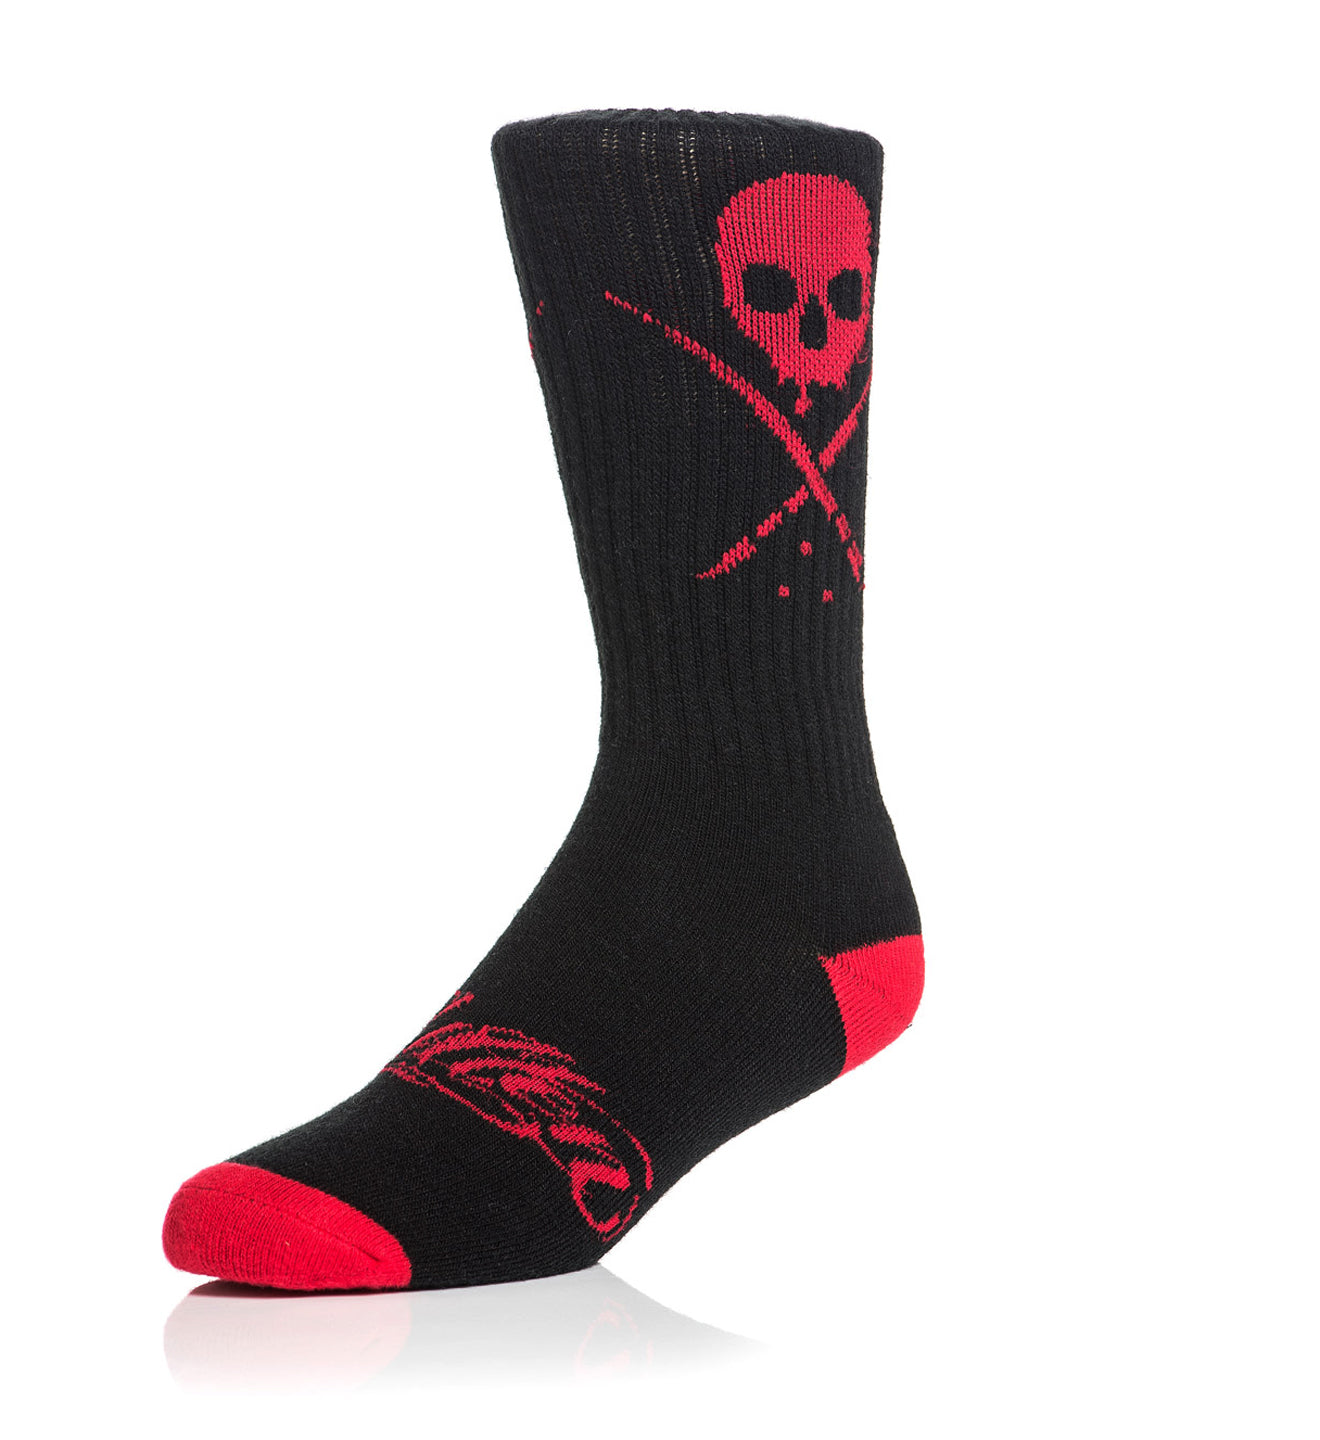 Standard Issue Socks Black/Red